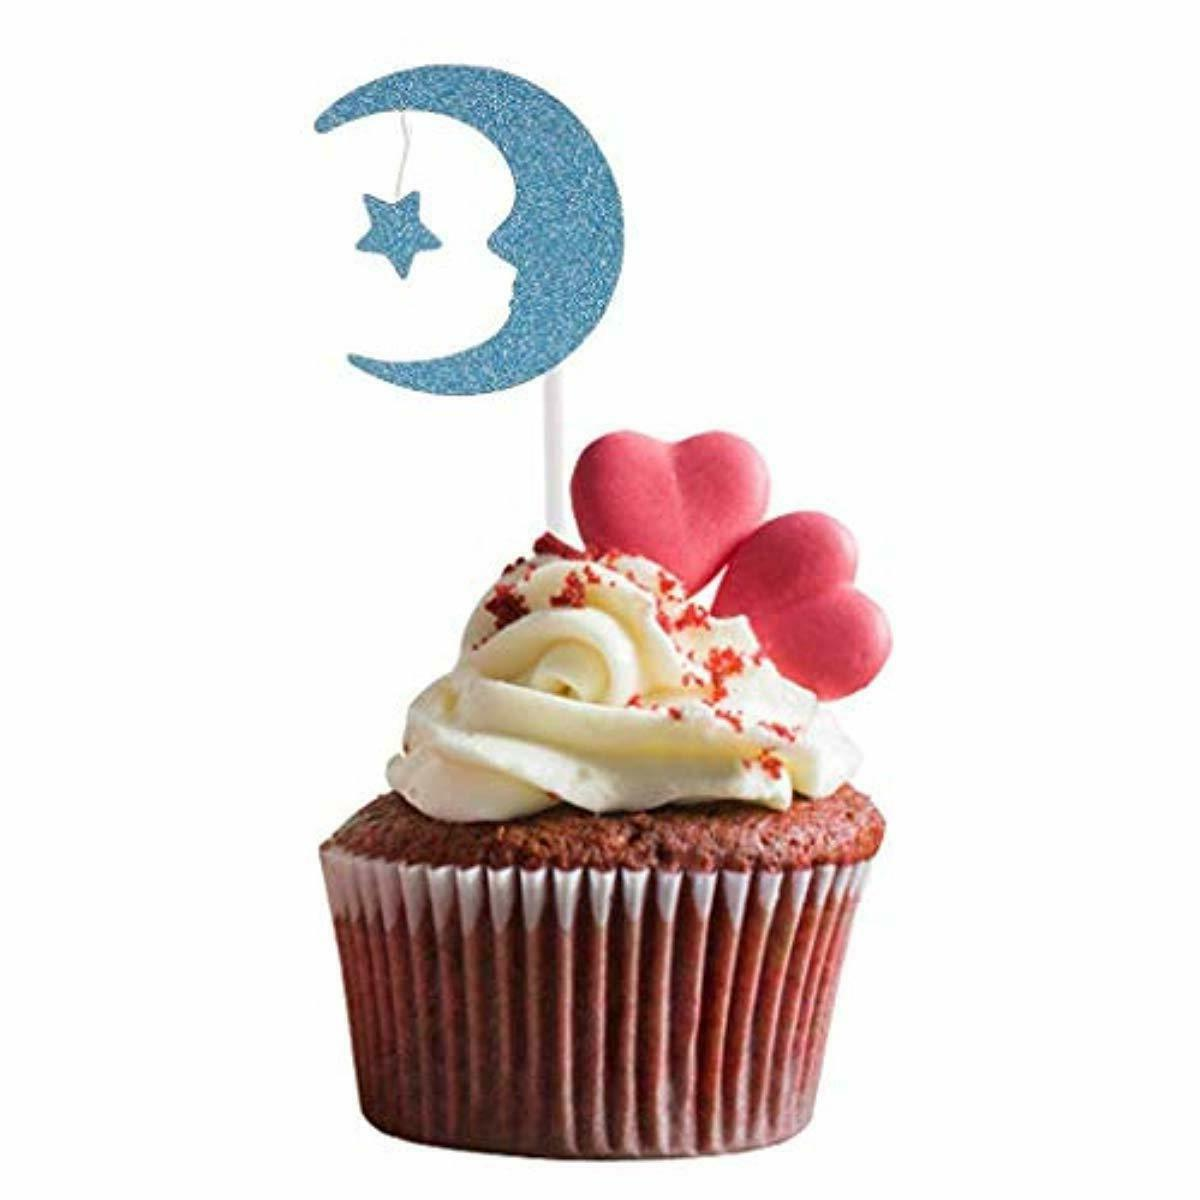 30Pcs Cupcake Toppers Paper Moon Star Cake Topper Wedding